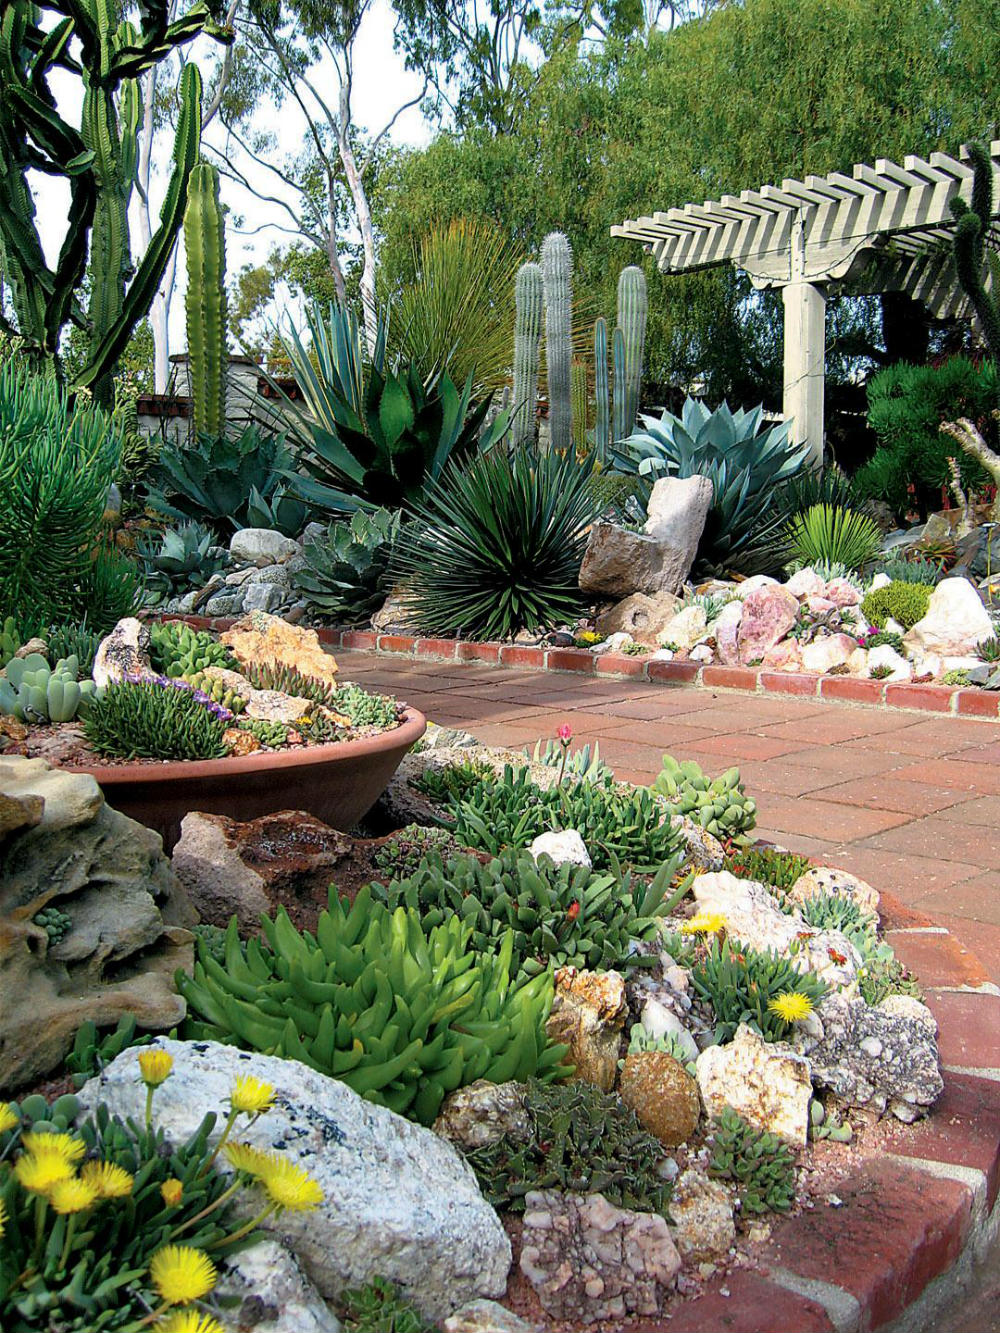 5 Of The Best Garden Trends For 2019 02 garden trends for 2019 5 Of The Best Garden Trends For 2019 5 Of The Best Garden Trends For 2019 02